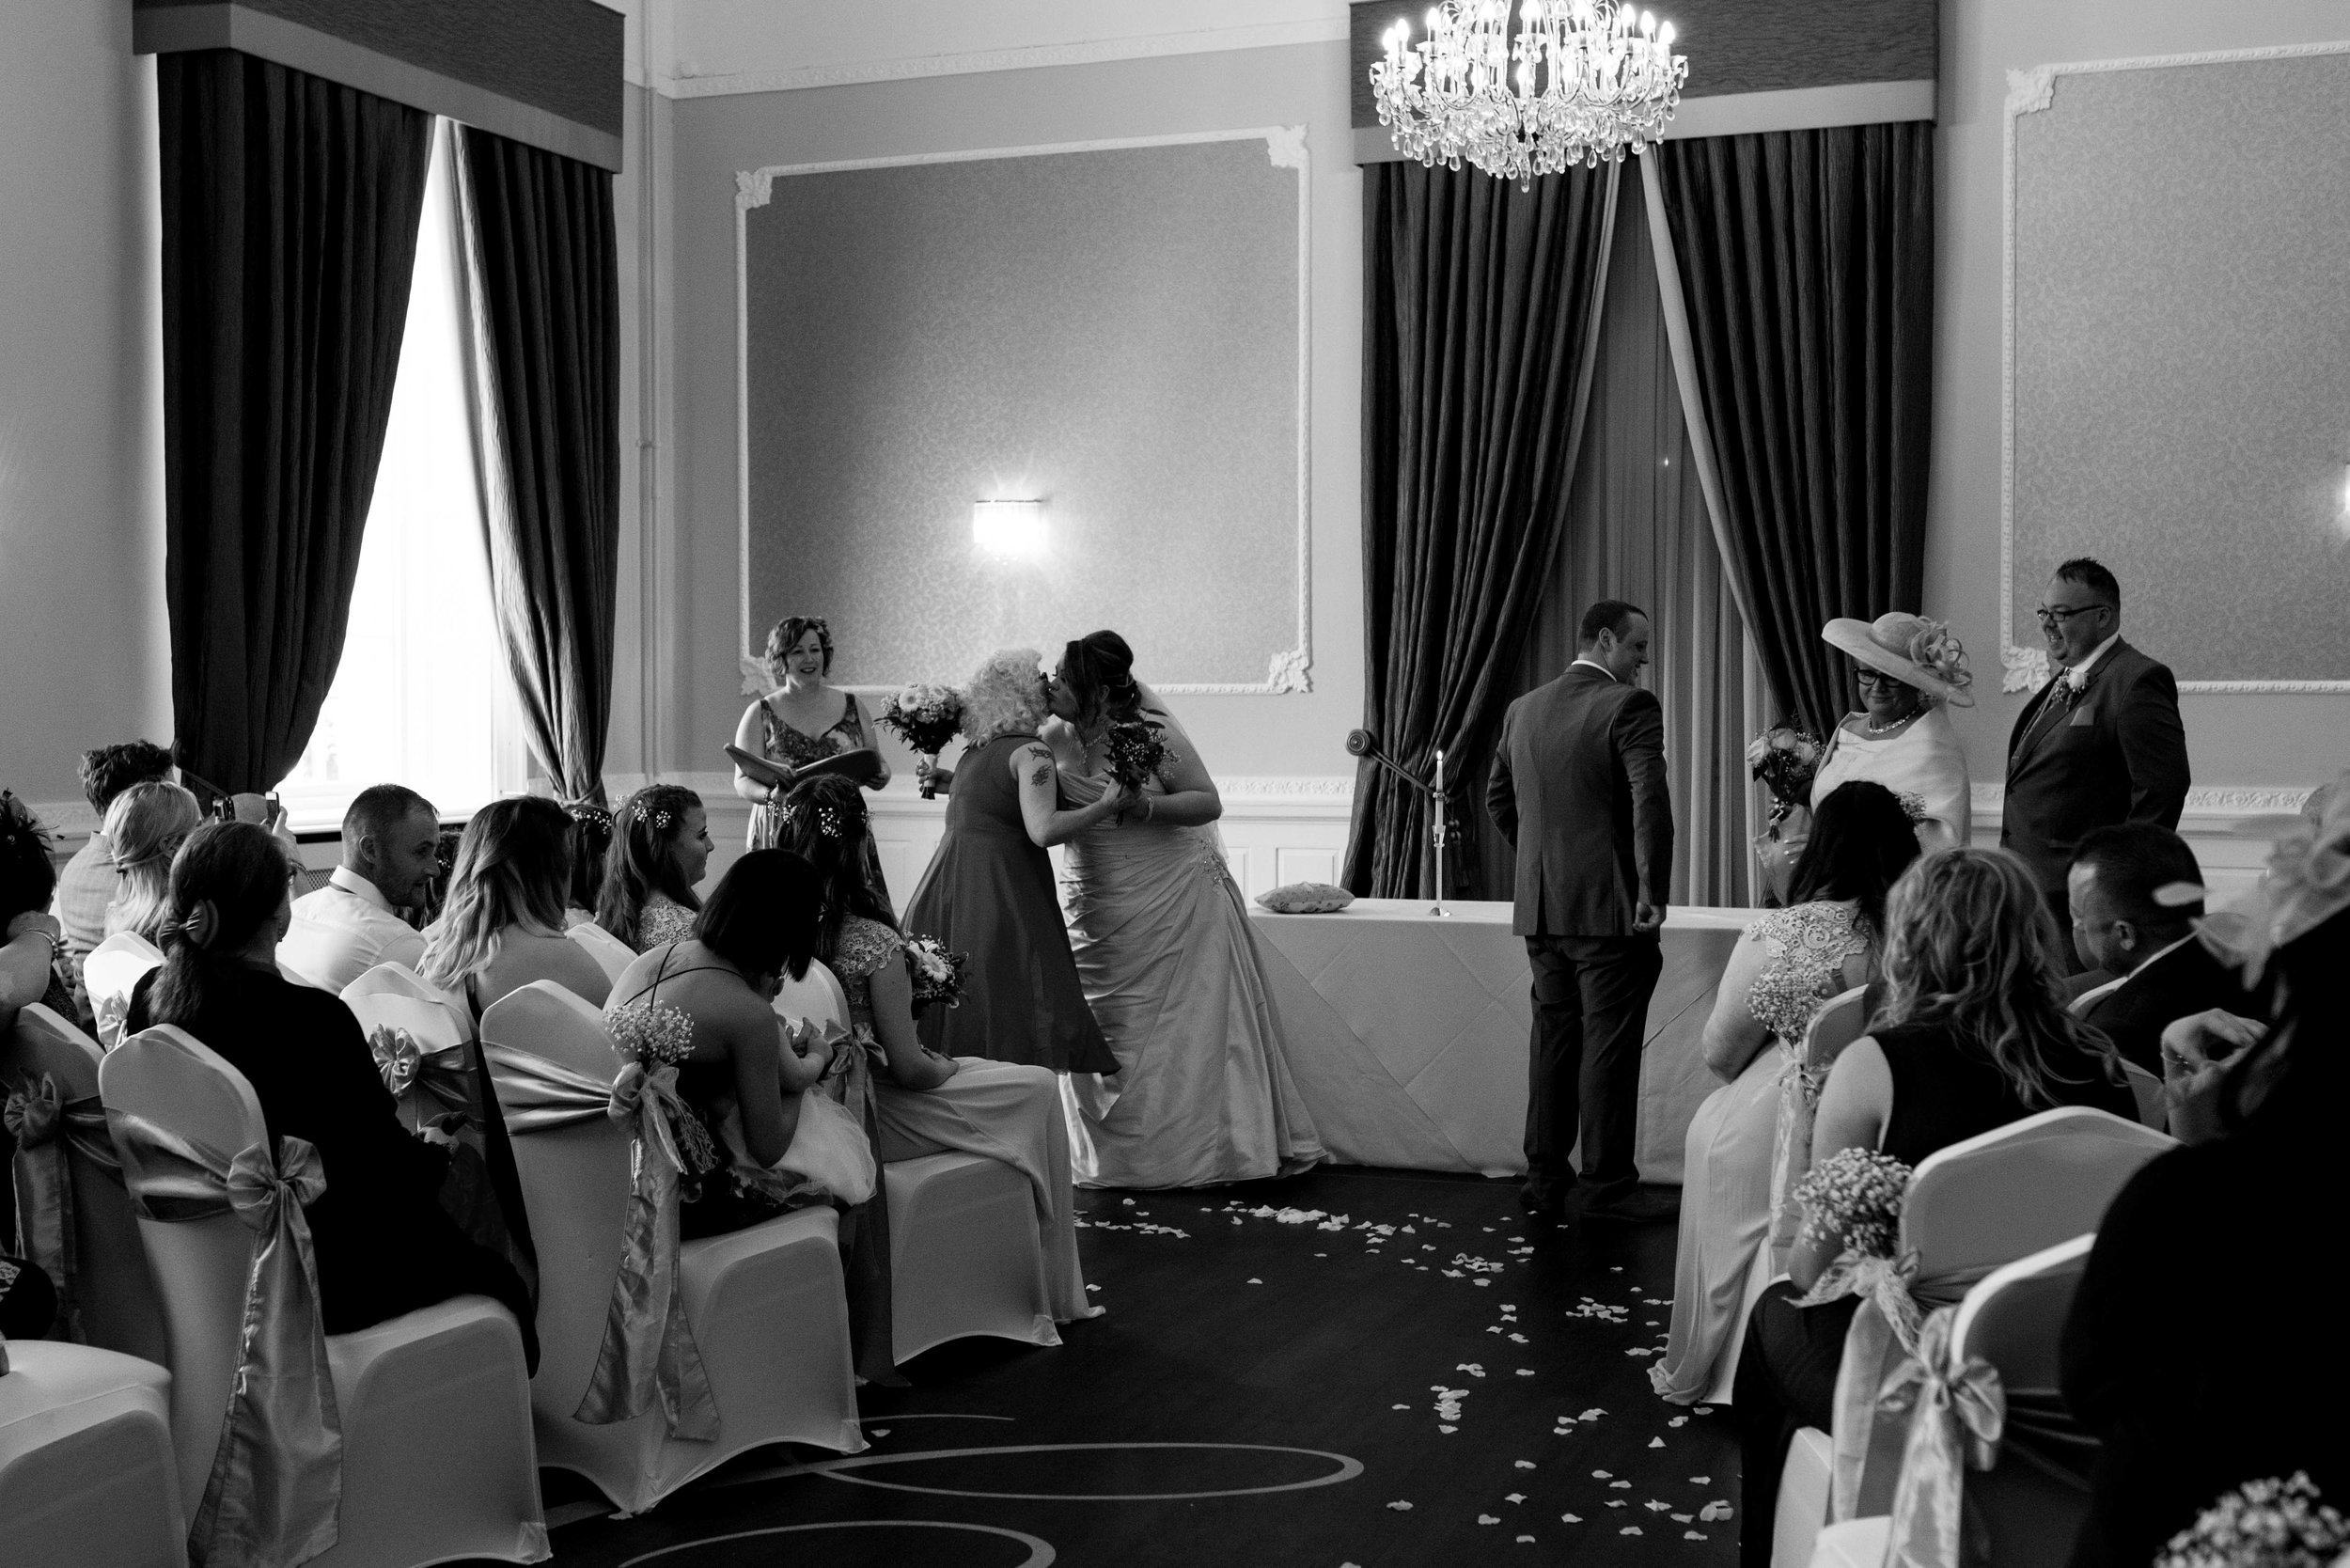 The bride and groom gift their mothers flowers during the wedding ceremony